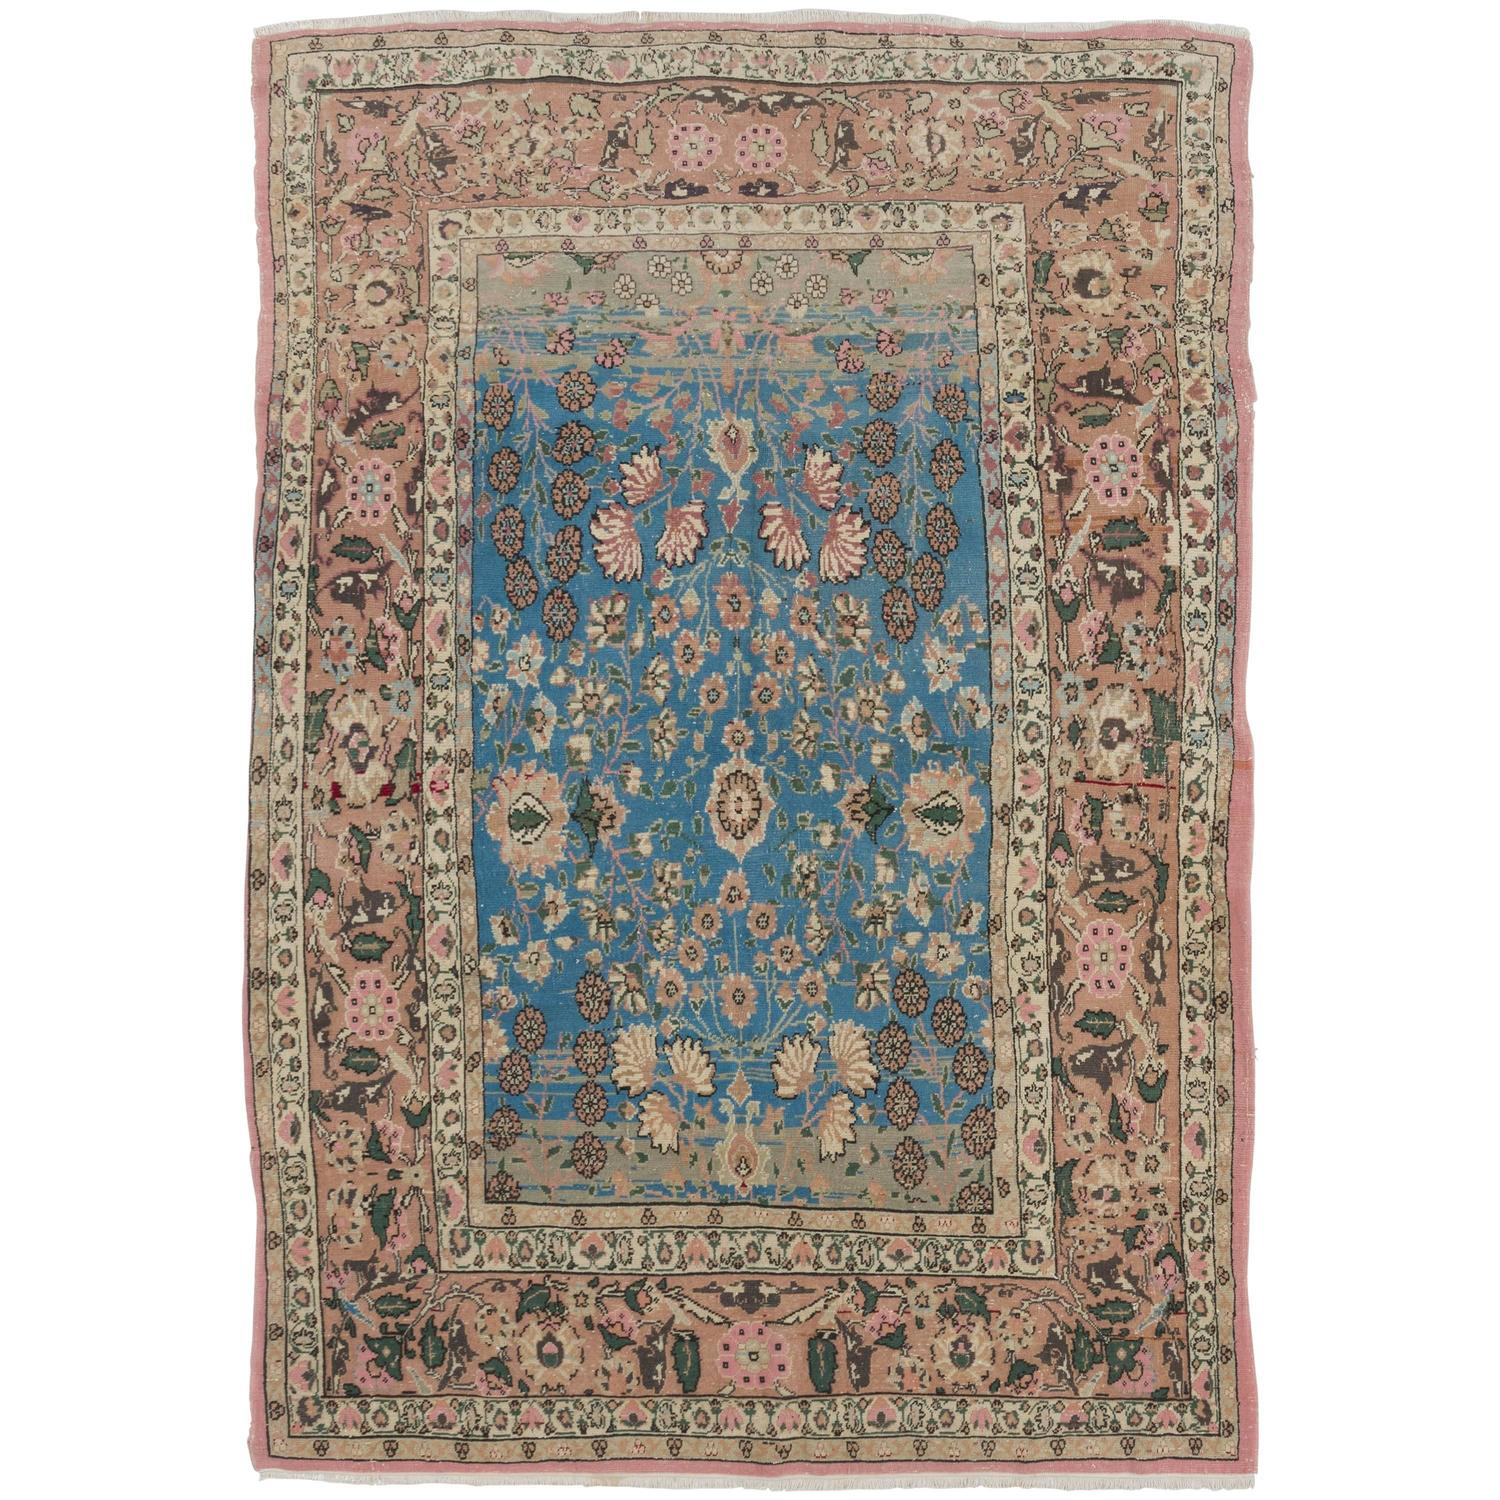 Floral Ghiordes Rug In Blue, Pink And Green Colors For